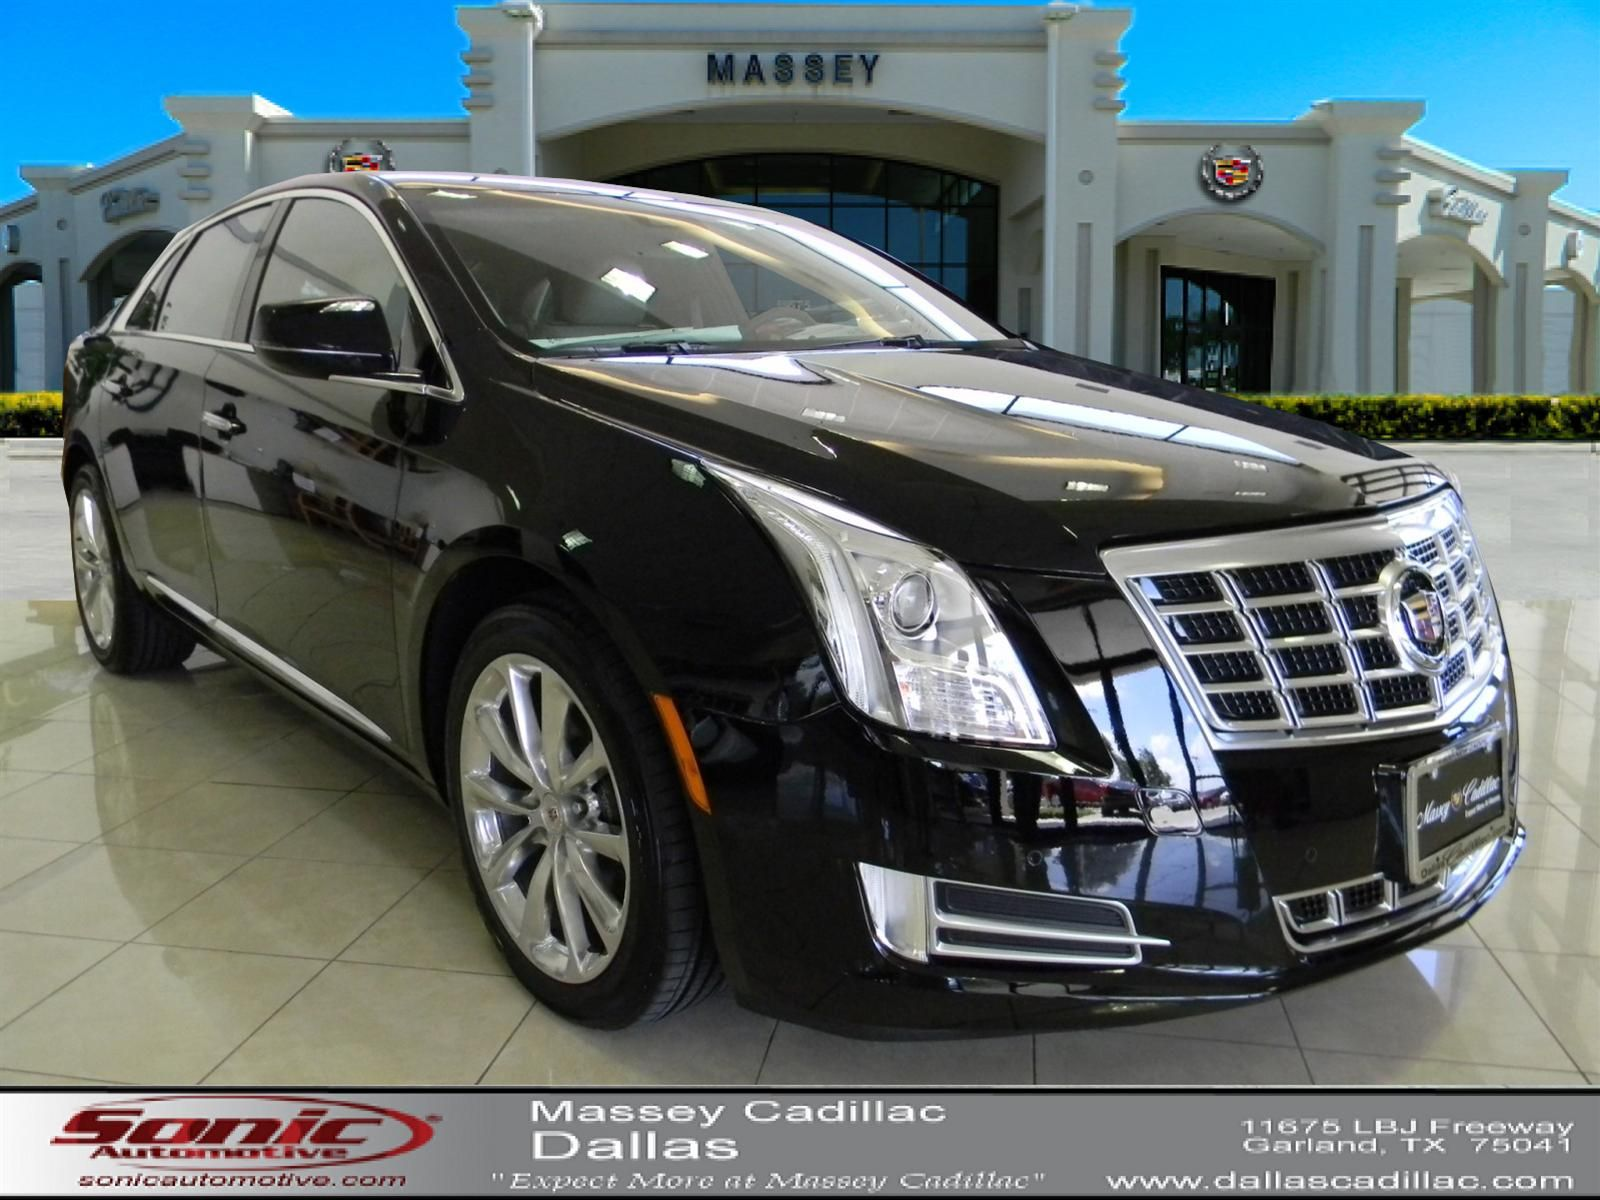 Better check with massey cadillac dallas browse our luxury cars suv inventory for models like the cts sts srx ats and escalade